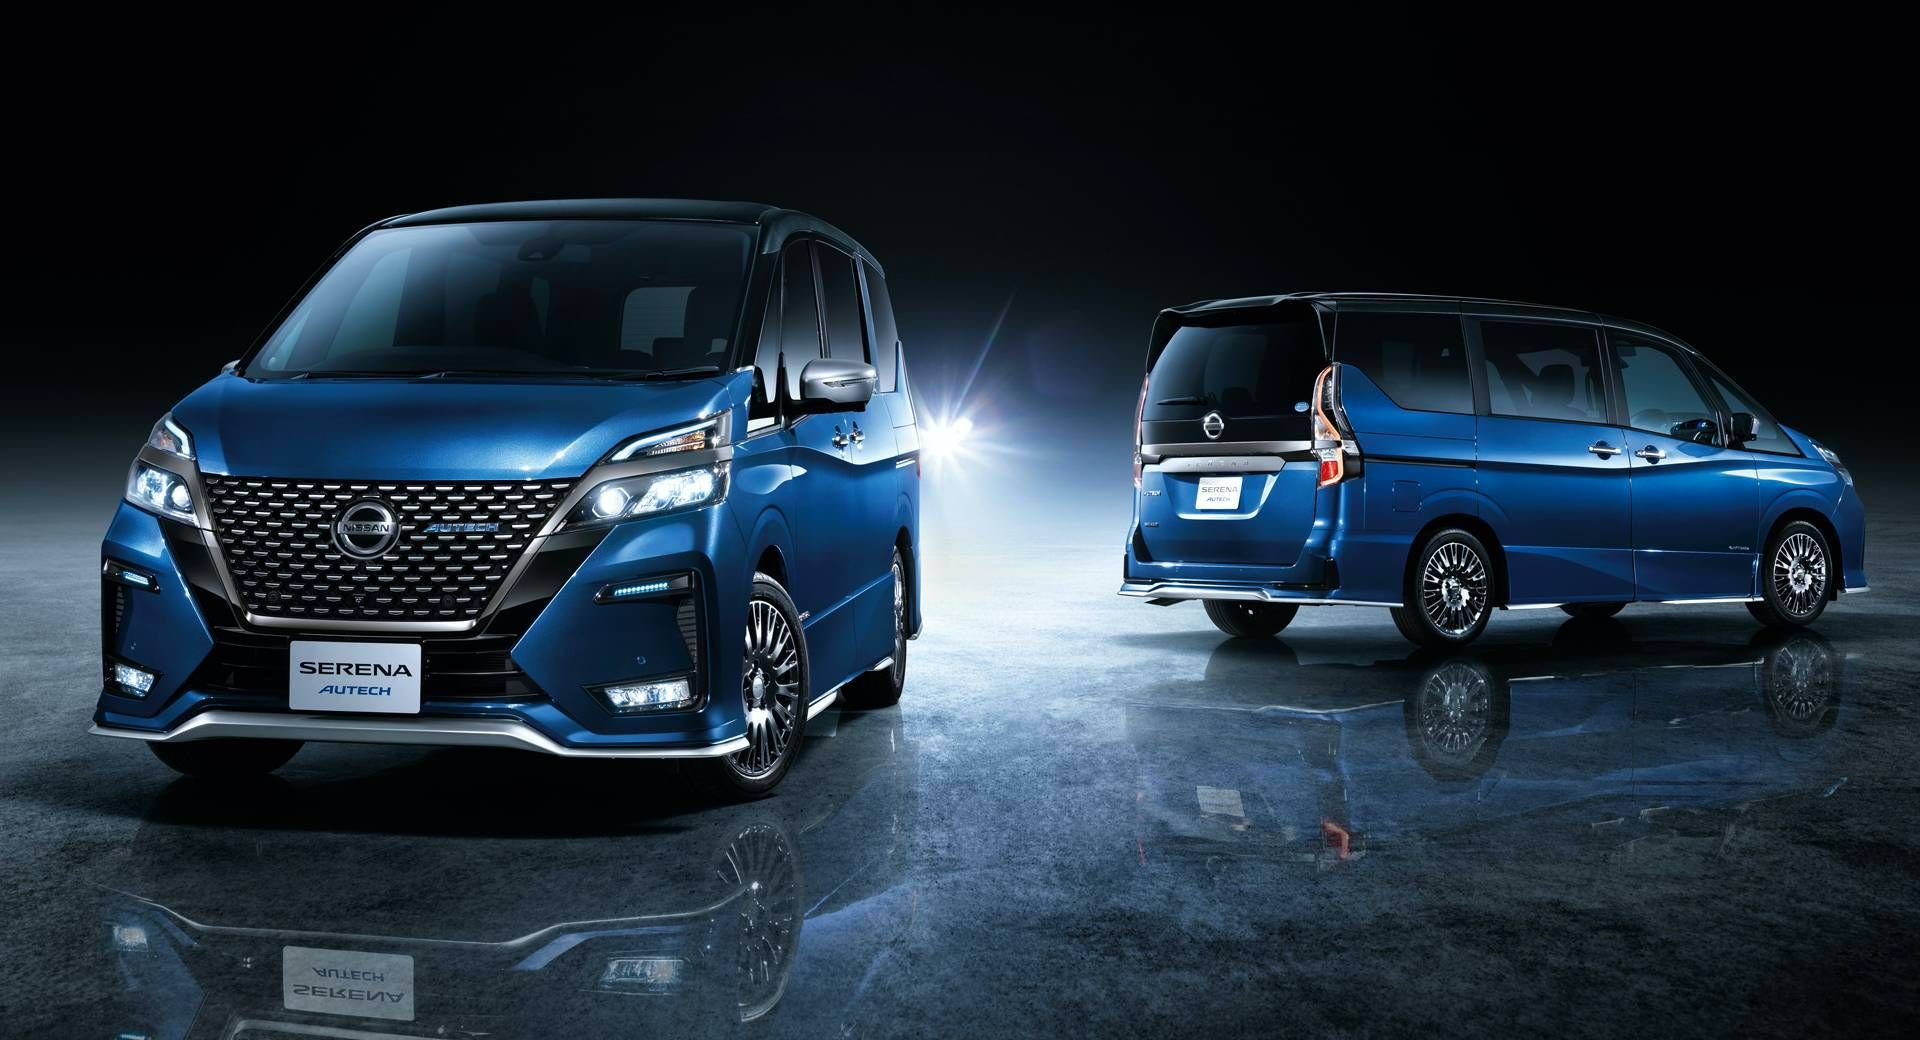 2020 Nissan Serena Given The Autech Sporty Overhaul In Japan Autech Hybrids Japan Newcars Nissan Nissanserena Prices T Nissan Mini Van Tokyo Motor Show